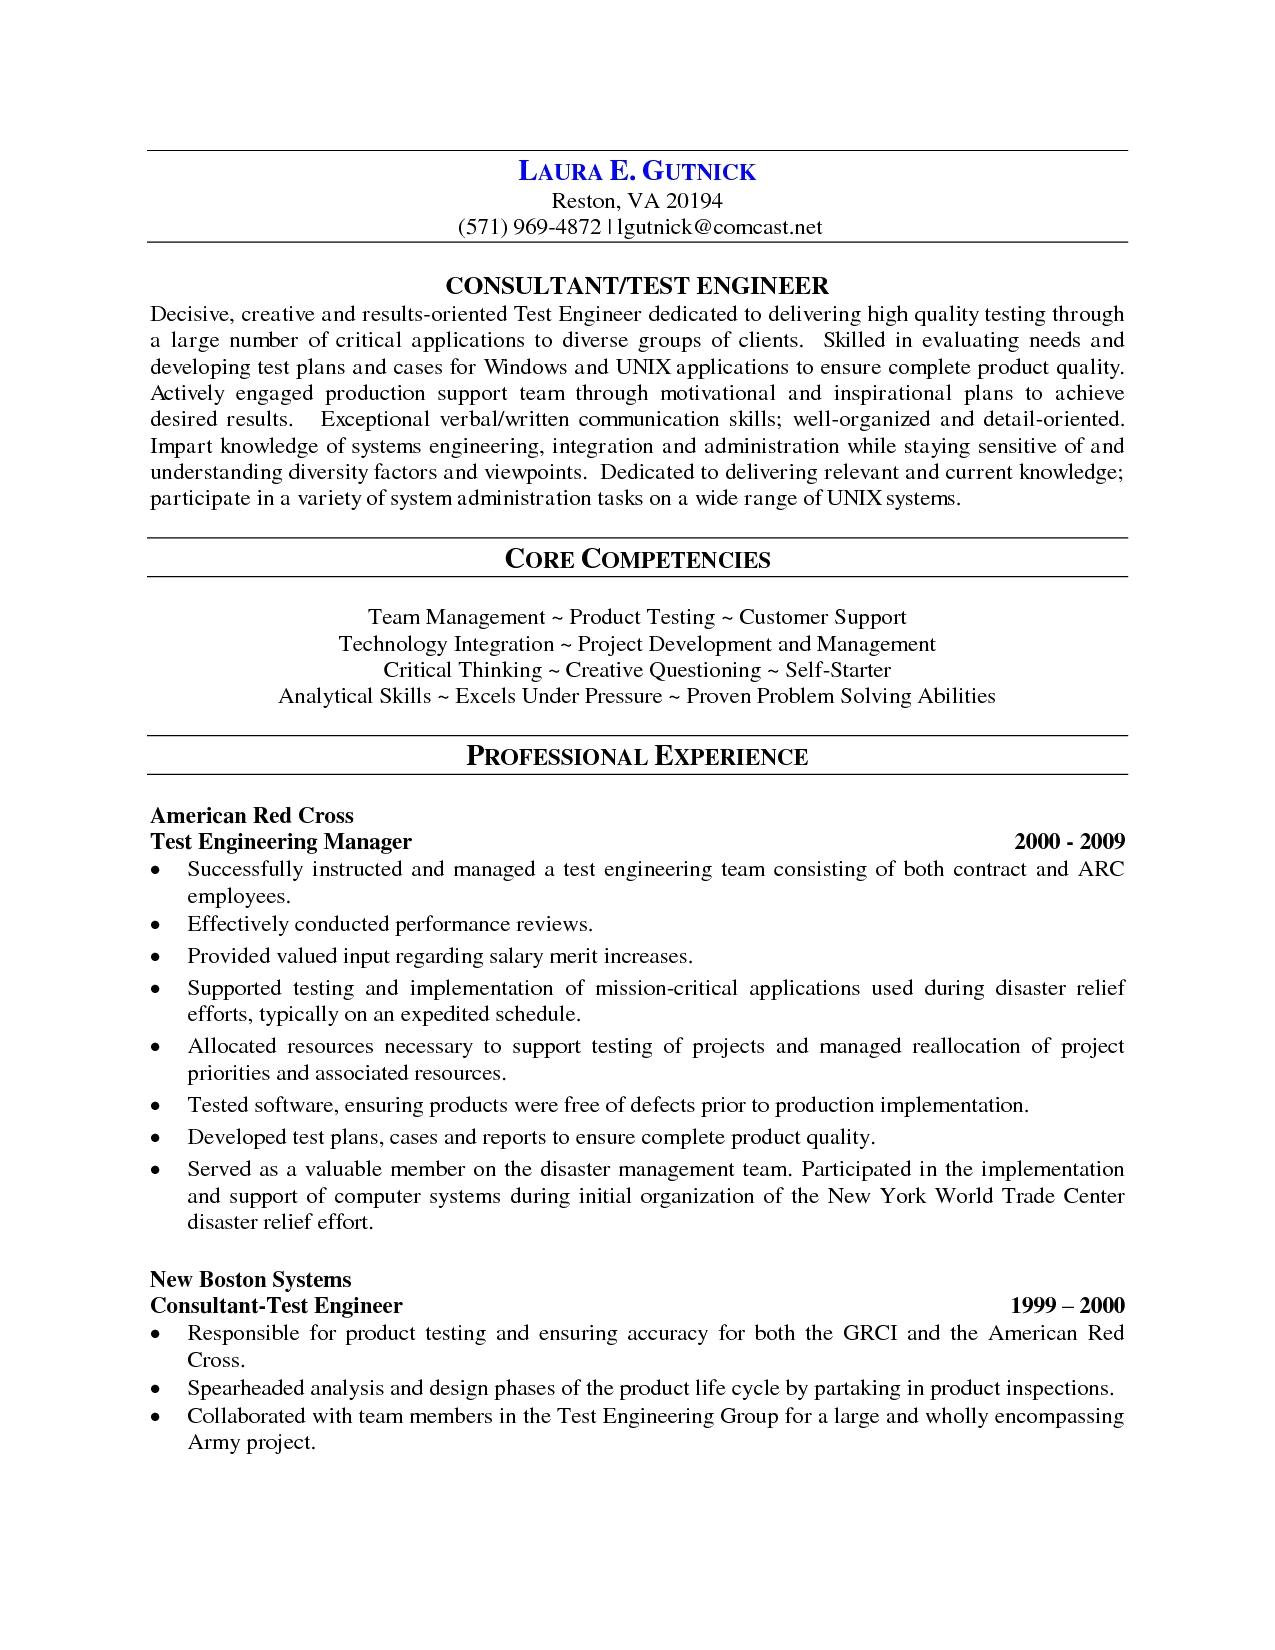 sample experience resume format lovely software testing resume samples 2 years experience